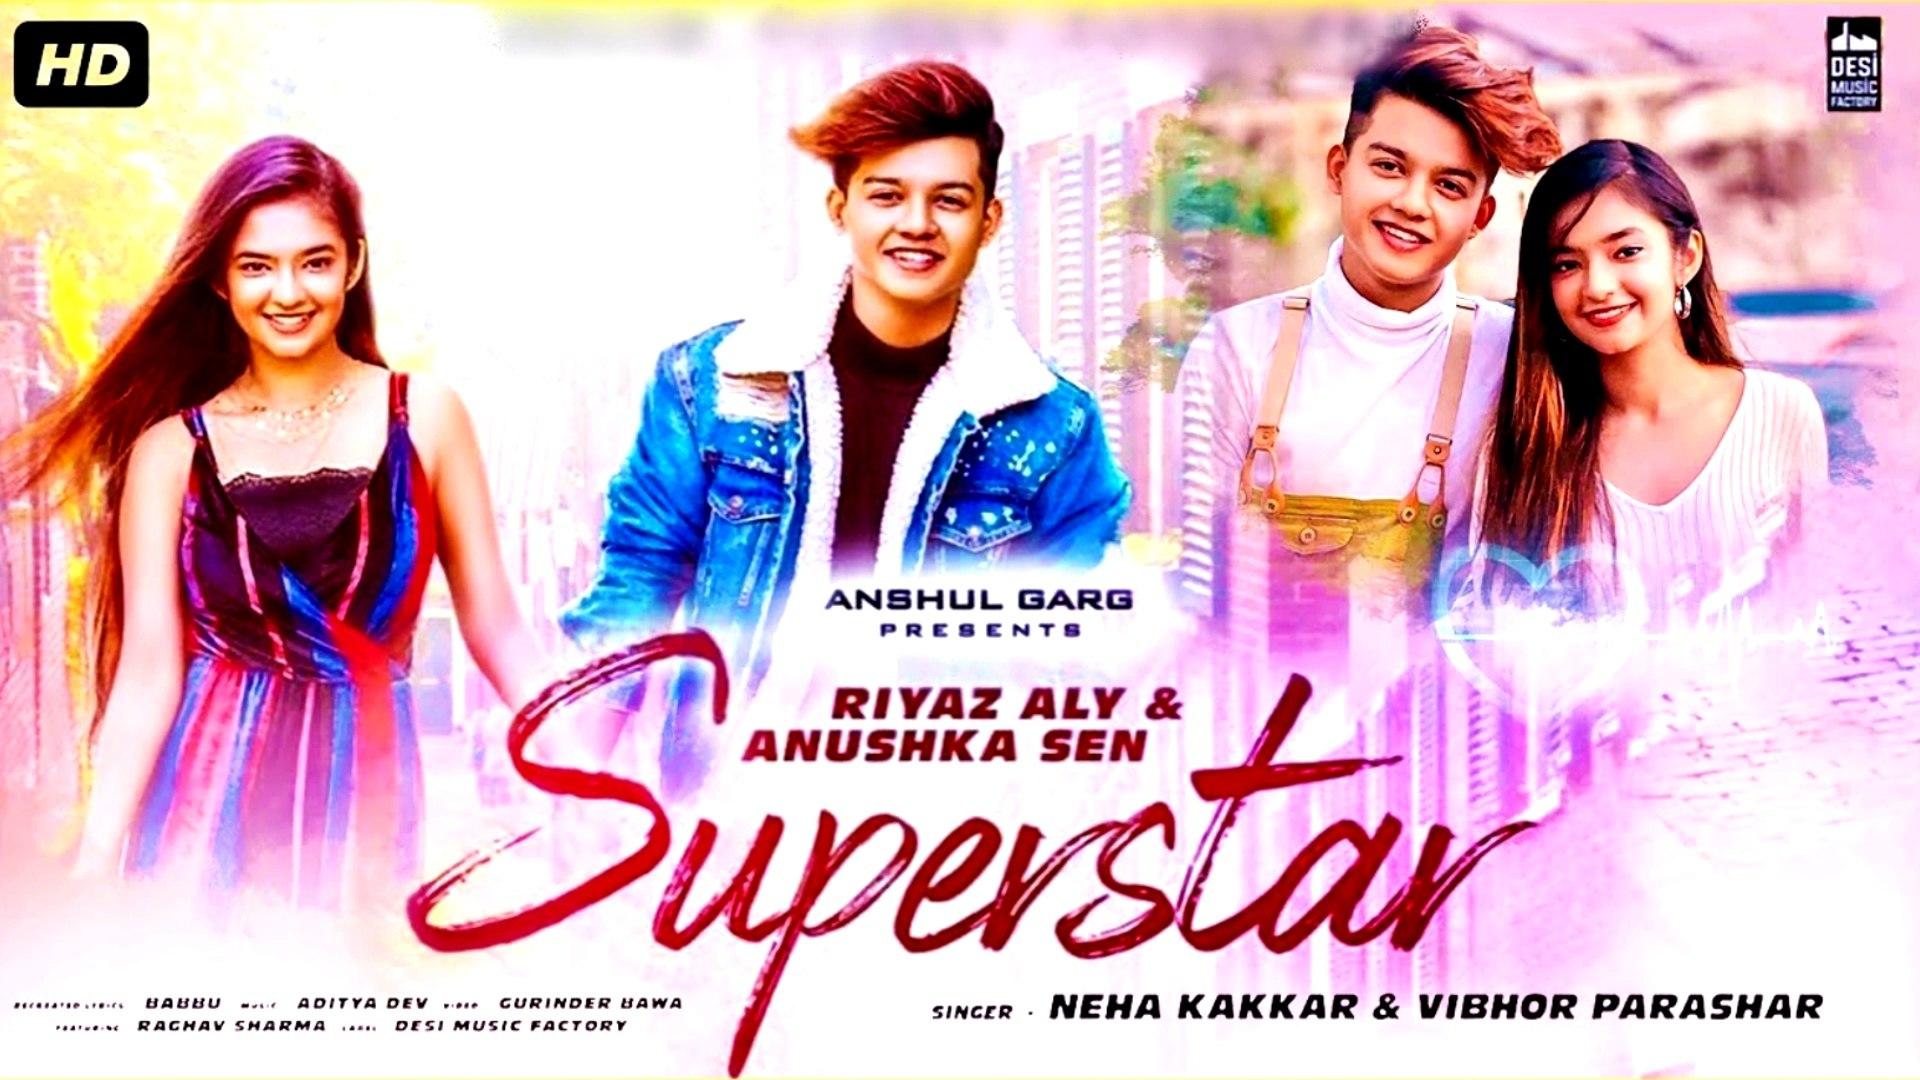 Superstar Video Song : Neha Kakkar | Riyaz Aly, Anushka Sen | New Song 2019 | New Song Hindi Dj 2020